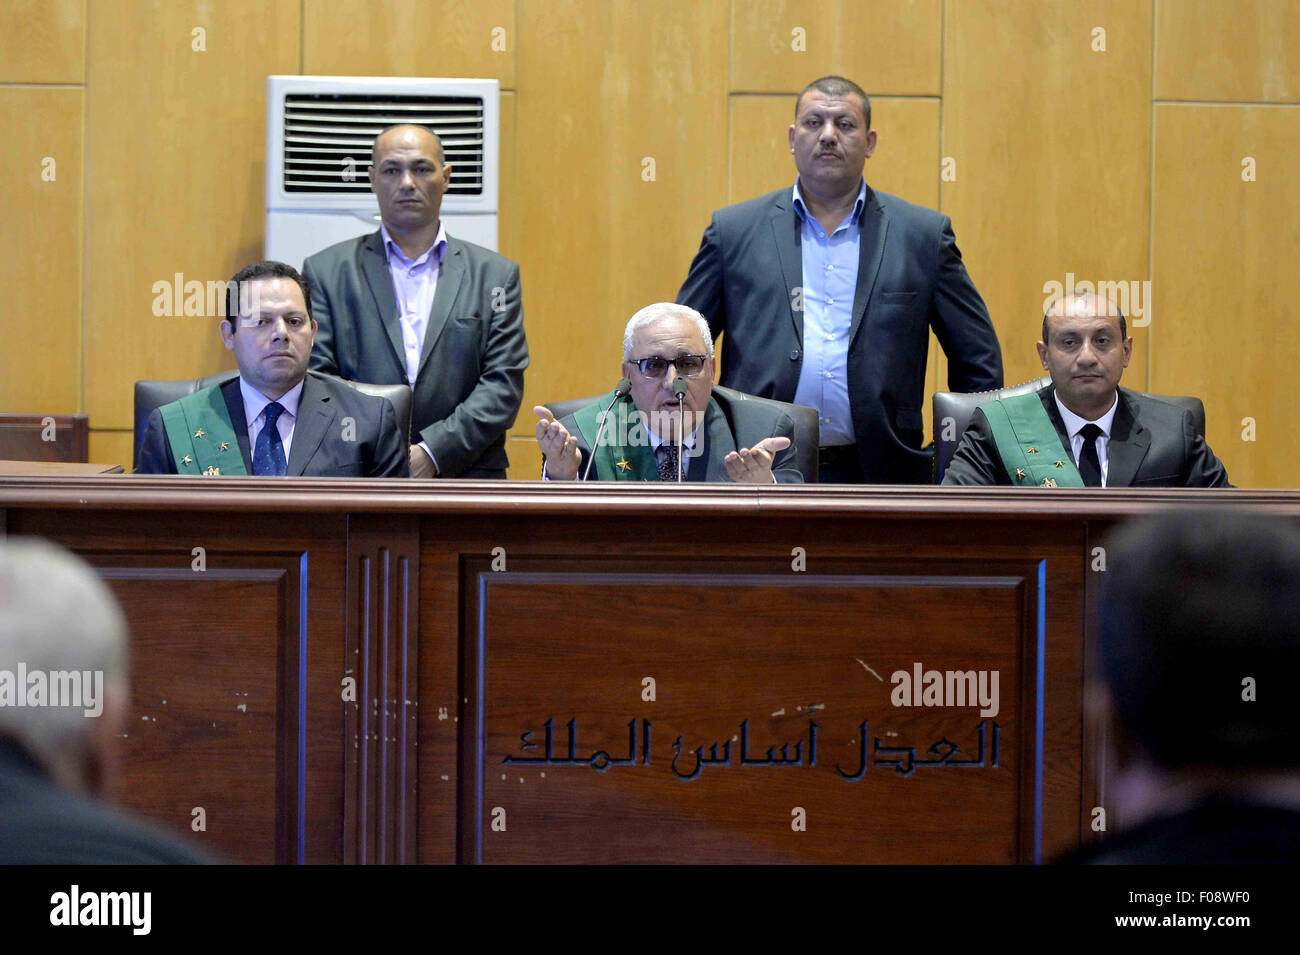 Cairo, Egypt. 9th Aug, 2015. The Judge attend the trial of Egyptian defendants over a 2012 stadium riot in the canal Stock Photo